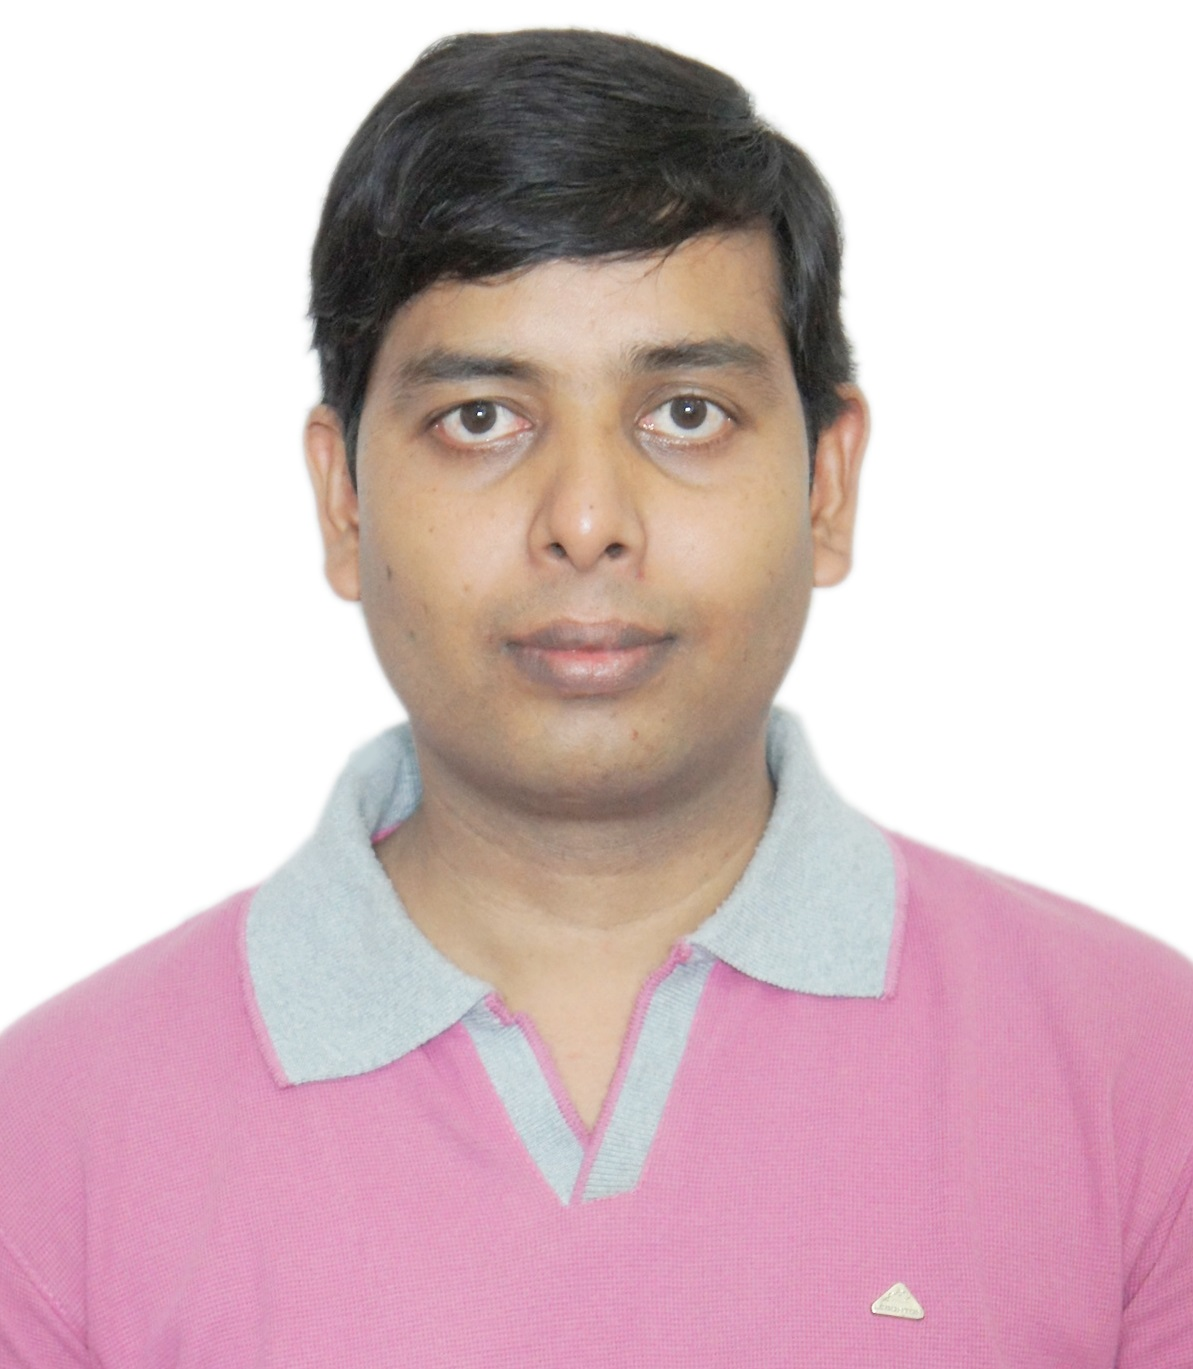 Photo of Akhilesh Kumar Singh